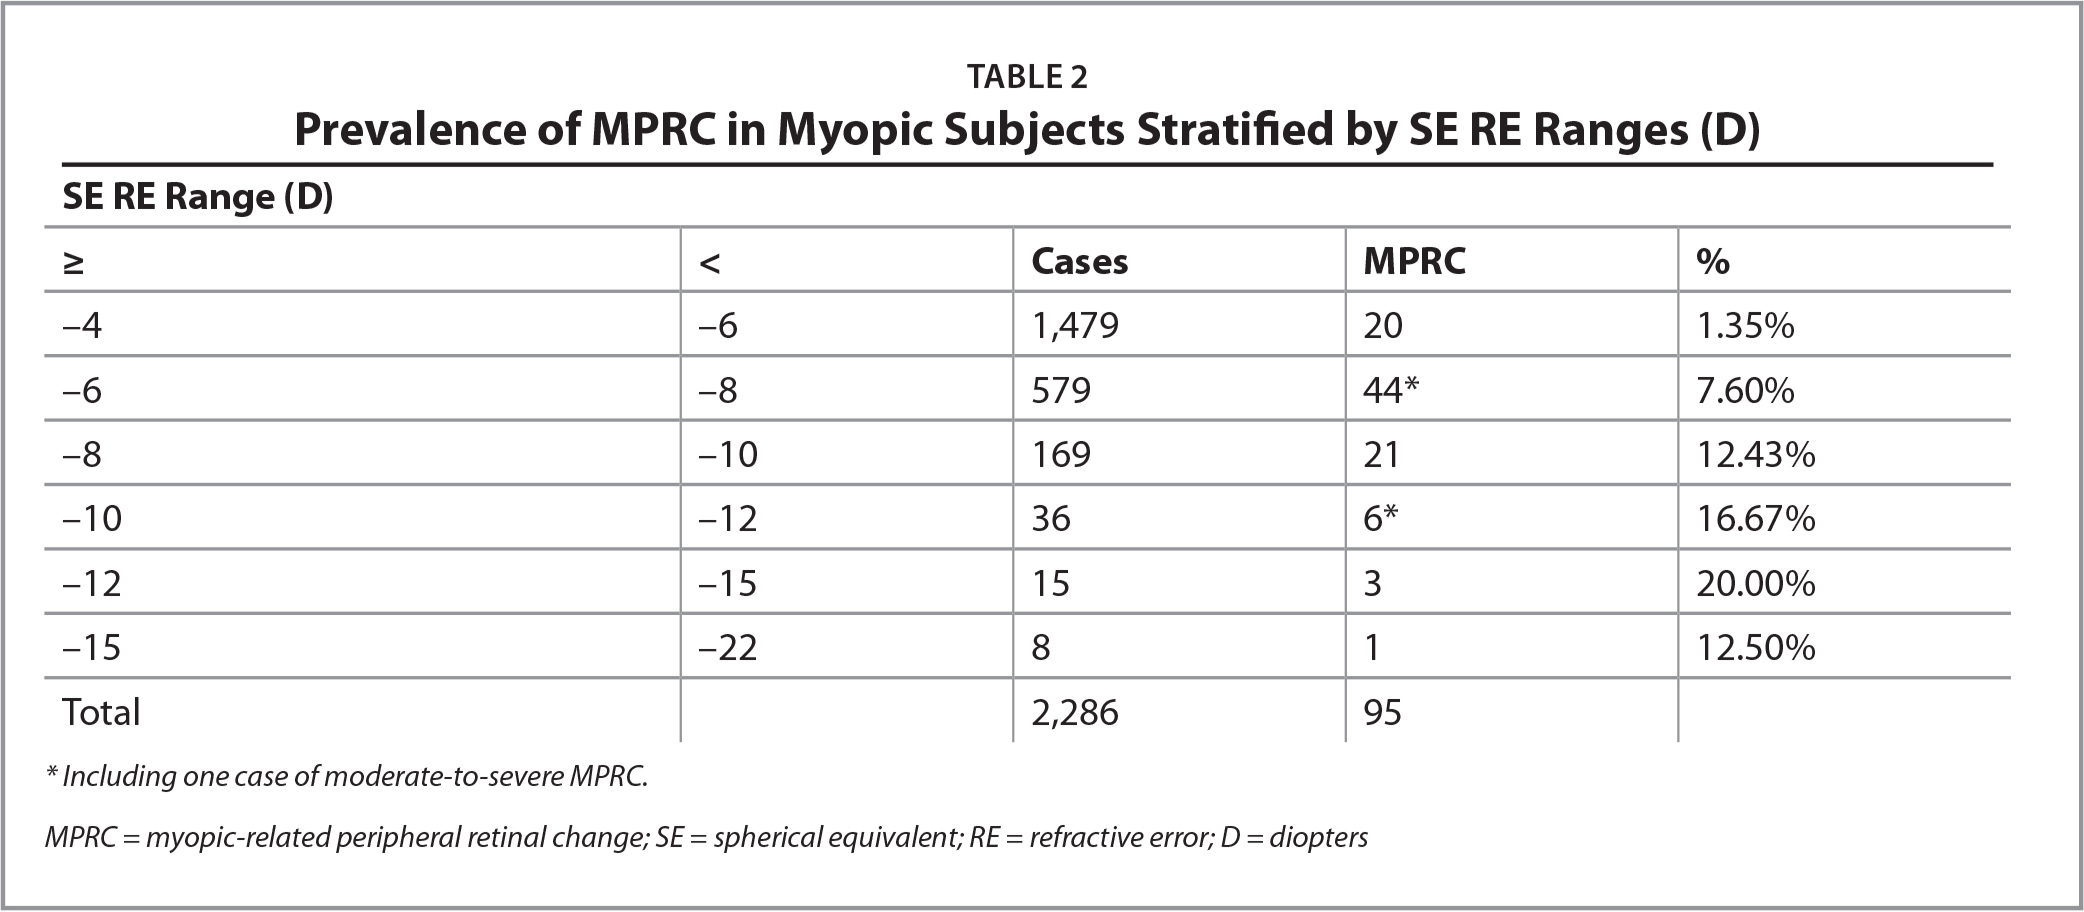 Prevalence of MPRC in Myopic Subjects Stratified by SE RE Ranges (D)